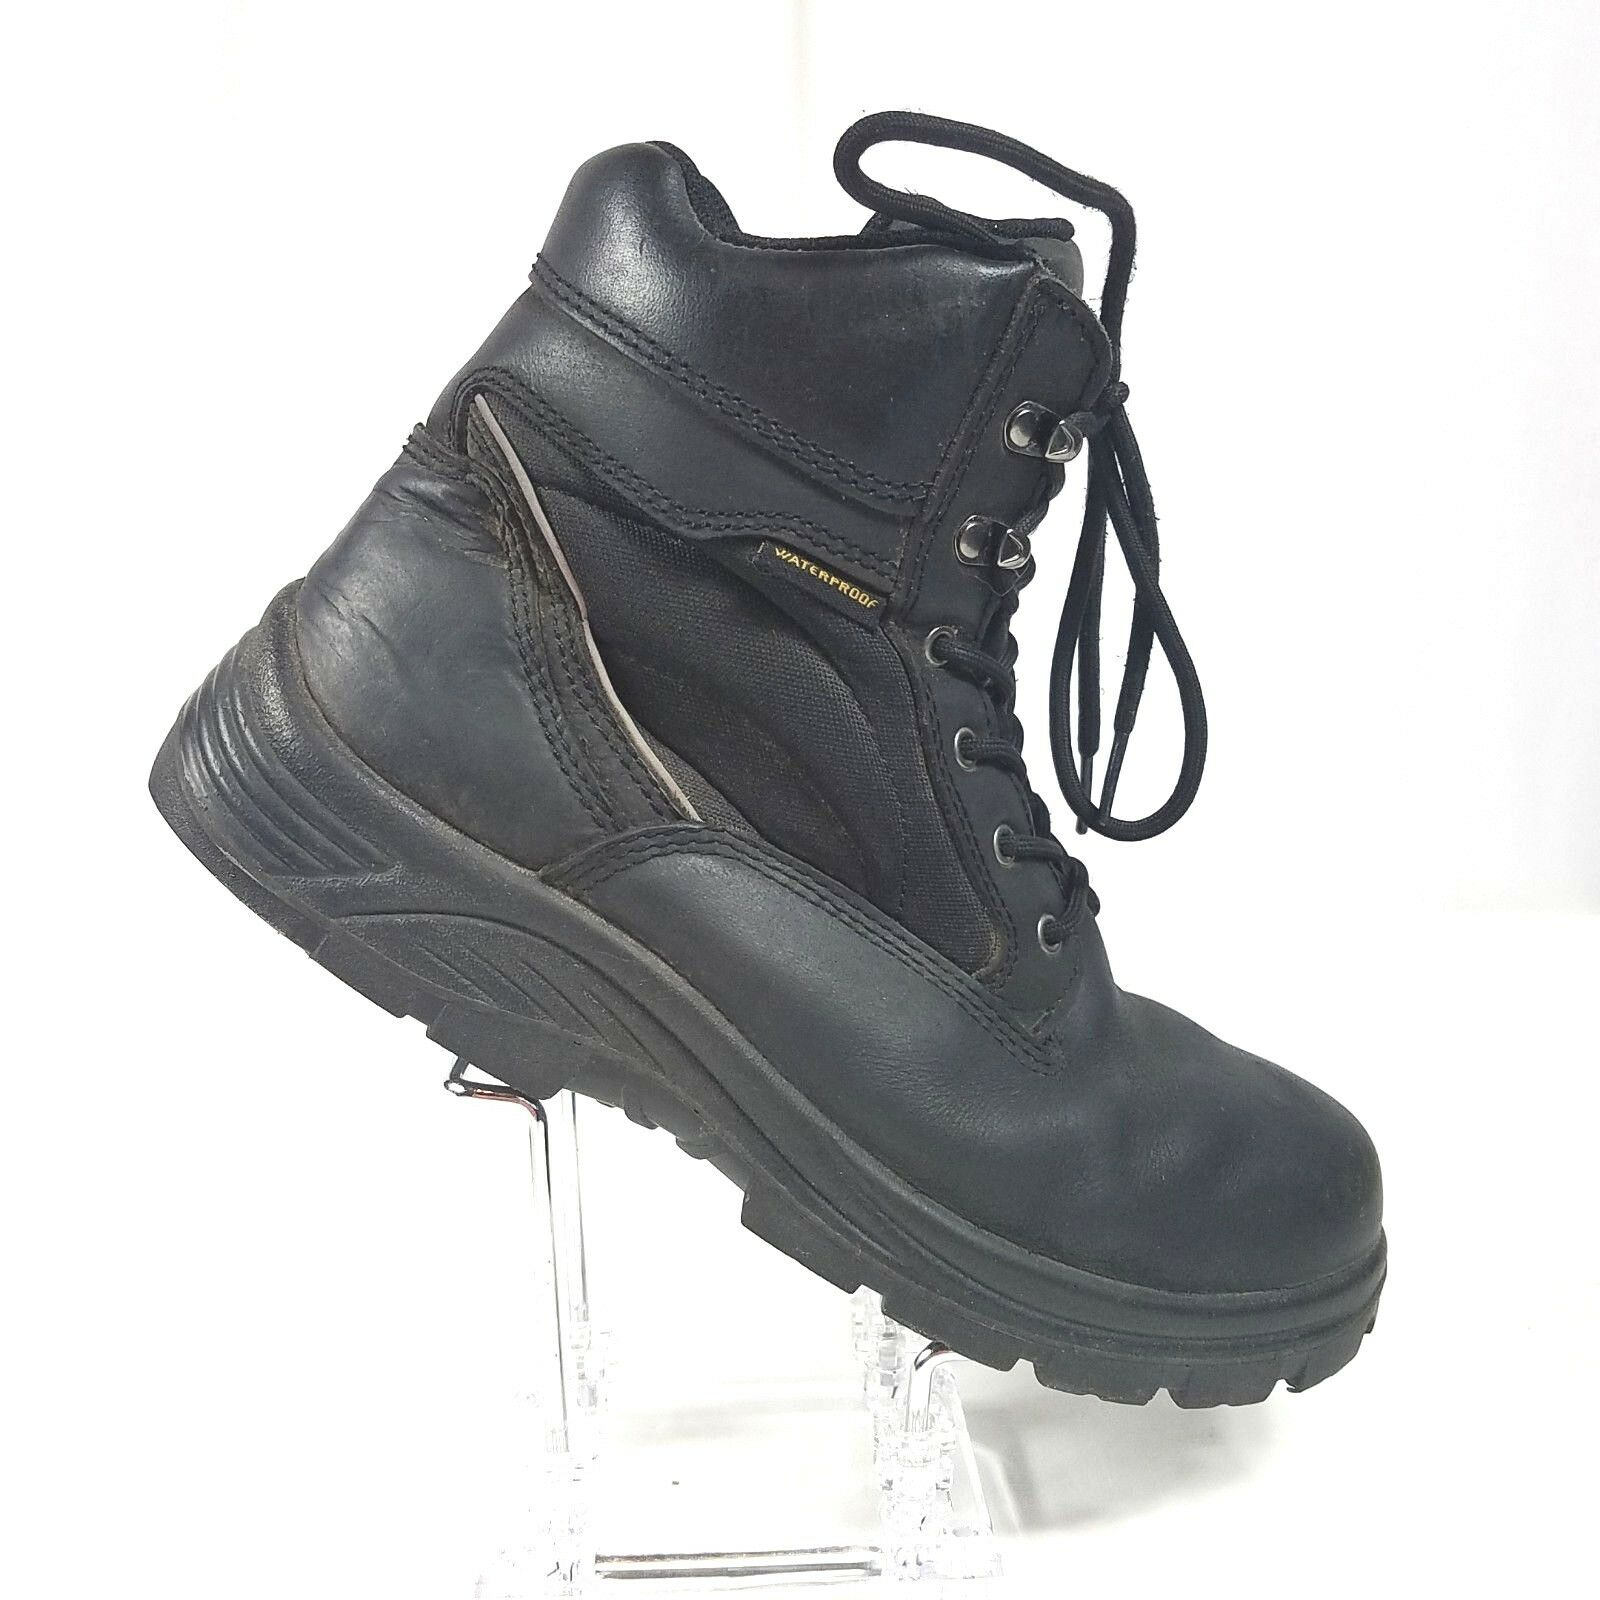 Avenger Mens Work Boots Size 10 M Waterproof Lace Up EH A7627 ASTM F2892-11